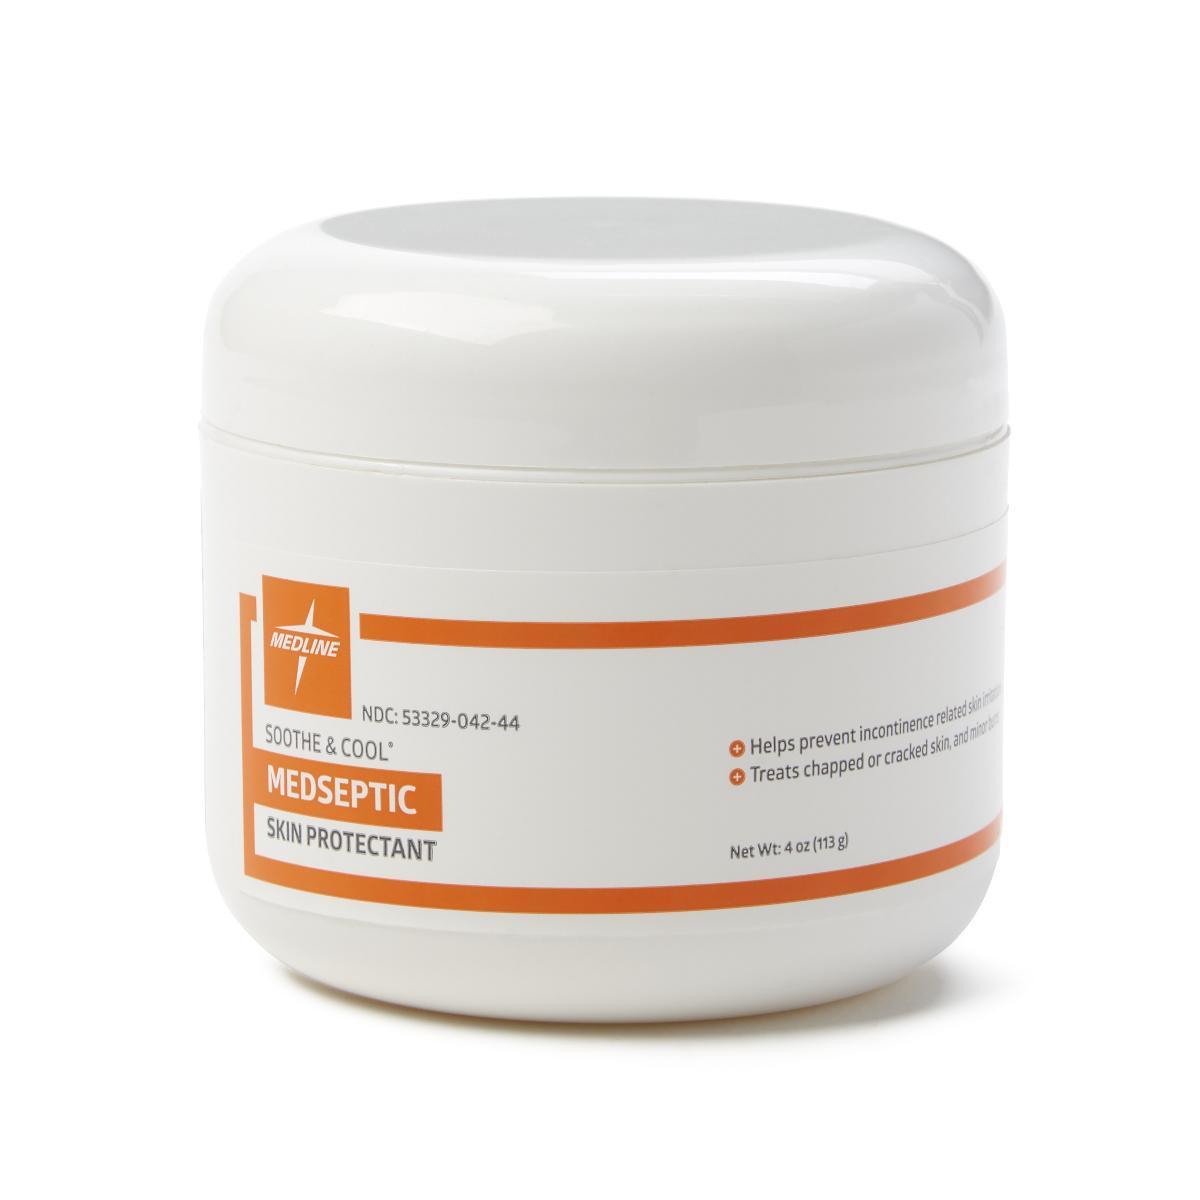 Medseptic Skin Protectant Cream - 4oz Jar - Medical Supply Surplus